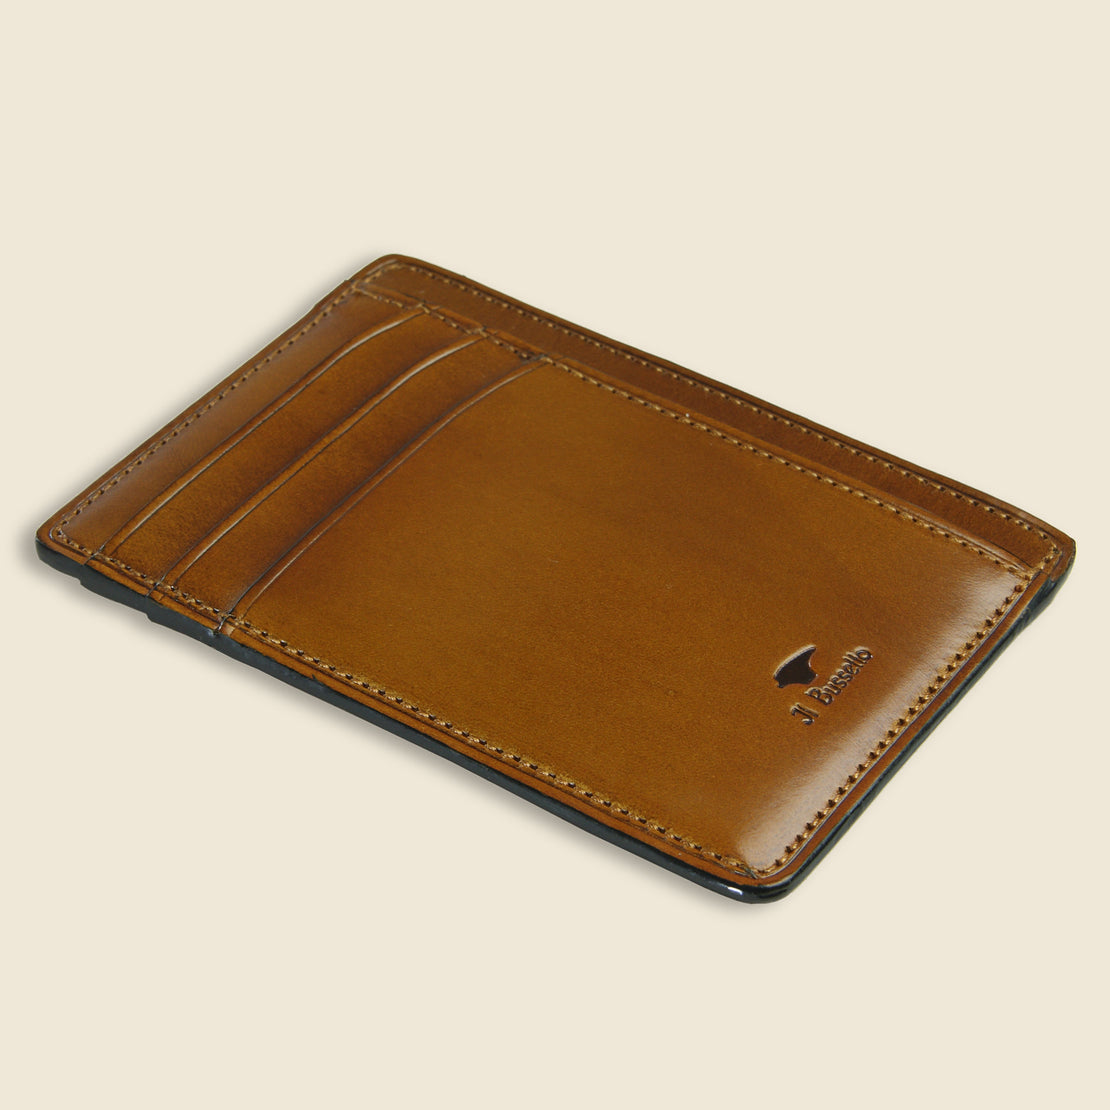 Card and Document Case - Light Brown - Il Bussetto - STAG Provisions - Accessories - Wallets